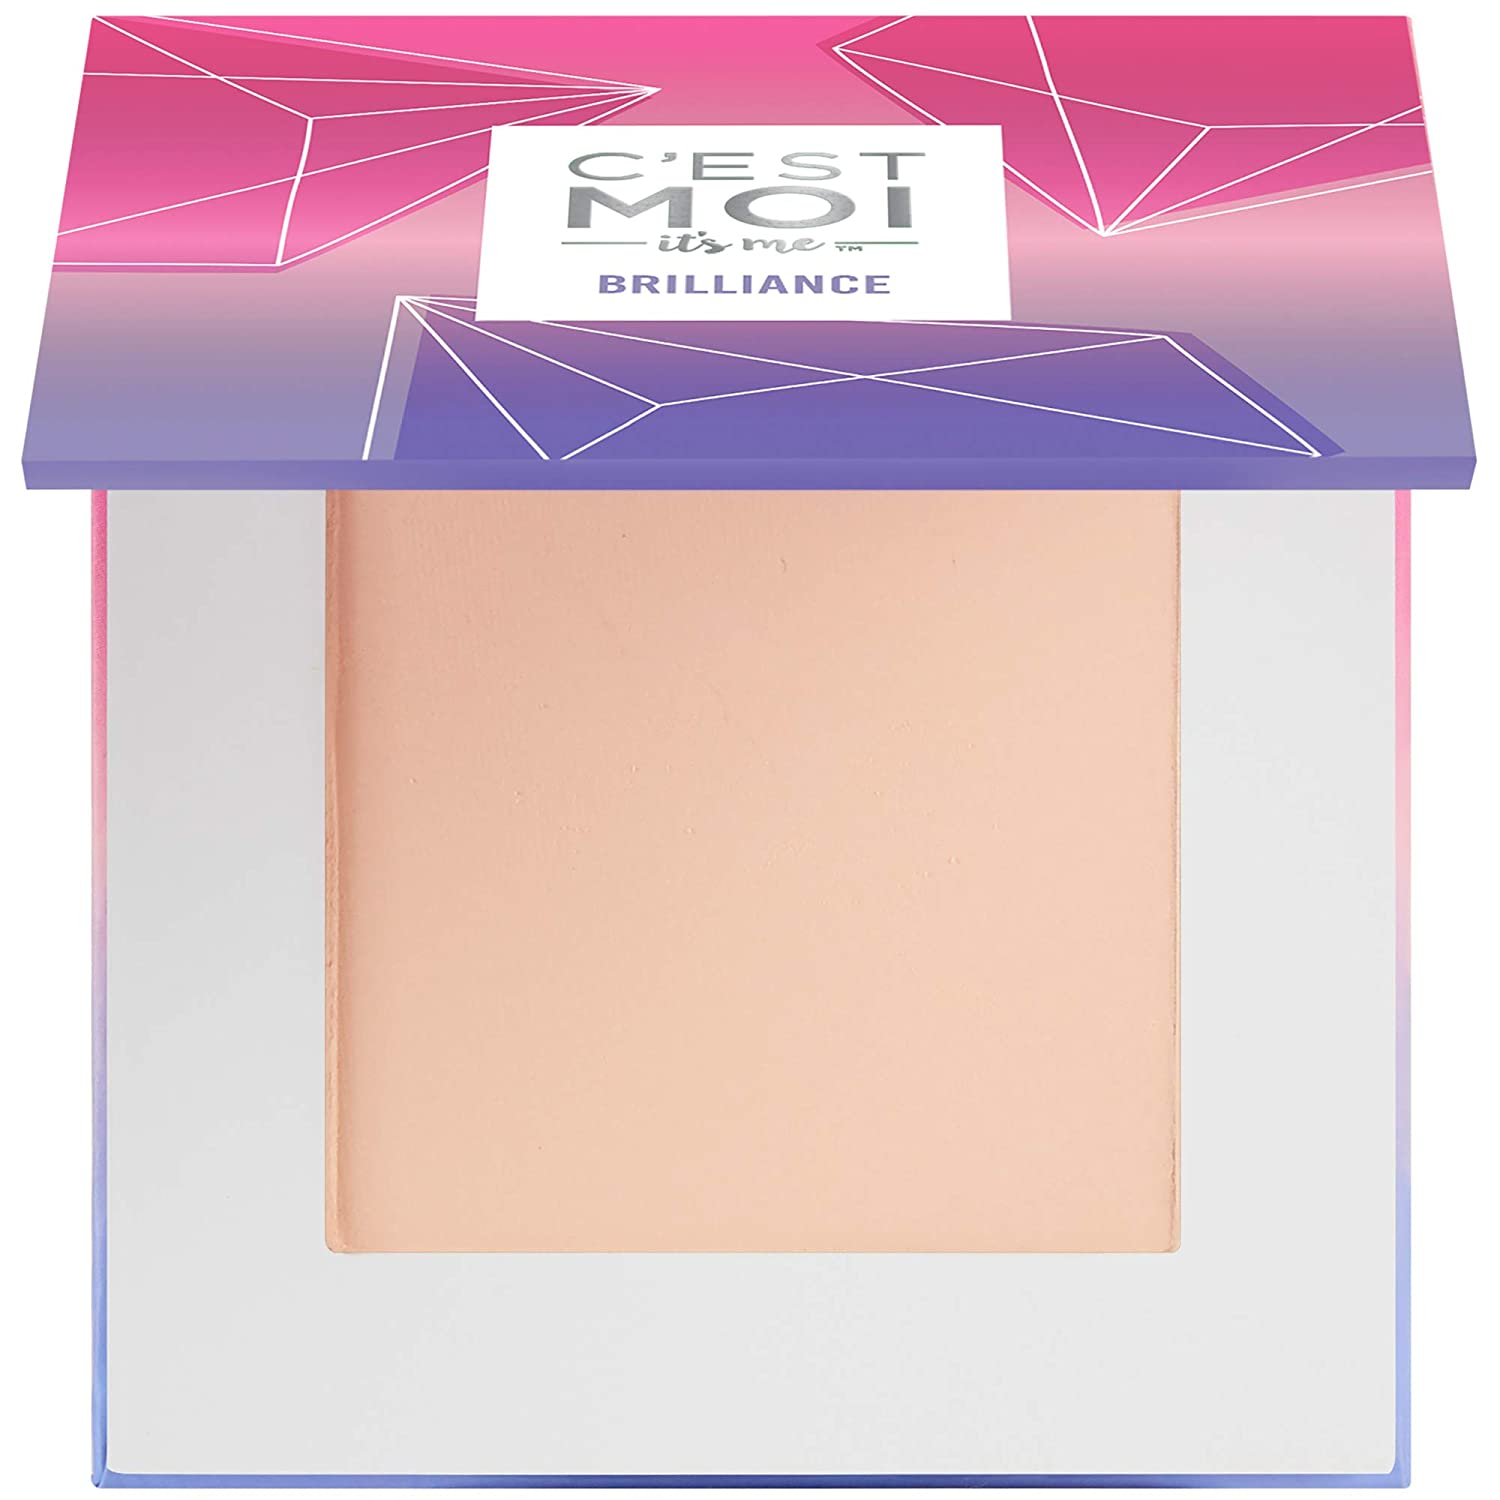 The C'est Moi Brilliance Pressed Powder Foundation travel product recommended by Deborah Kerner on Pretty Progressive.